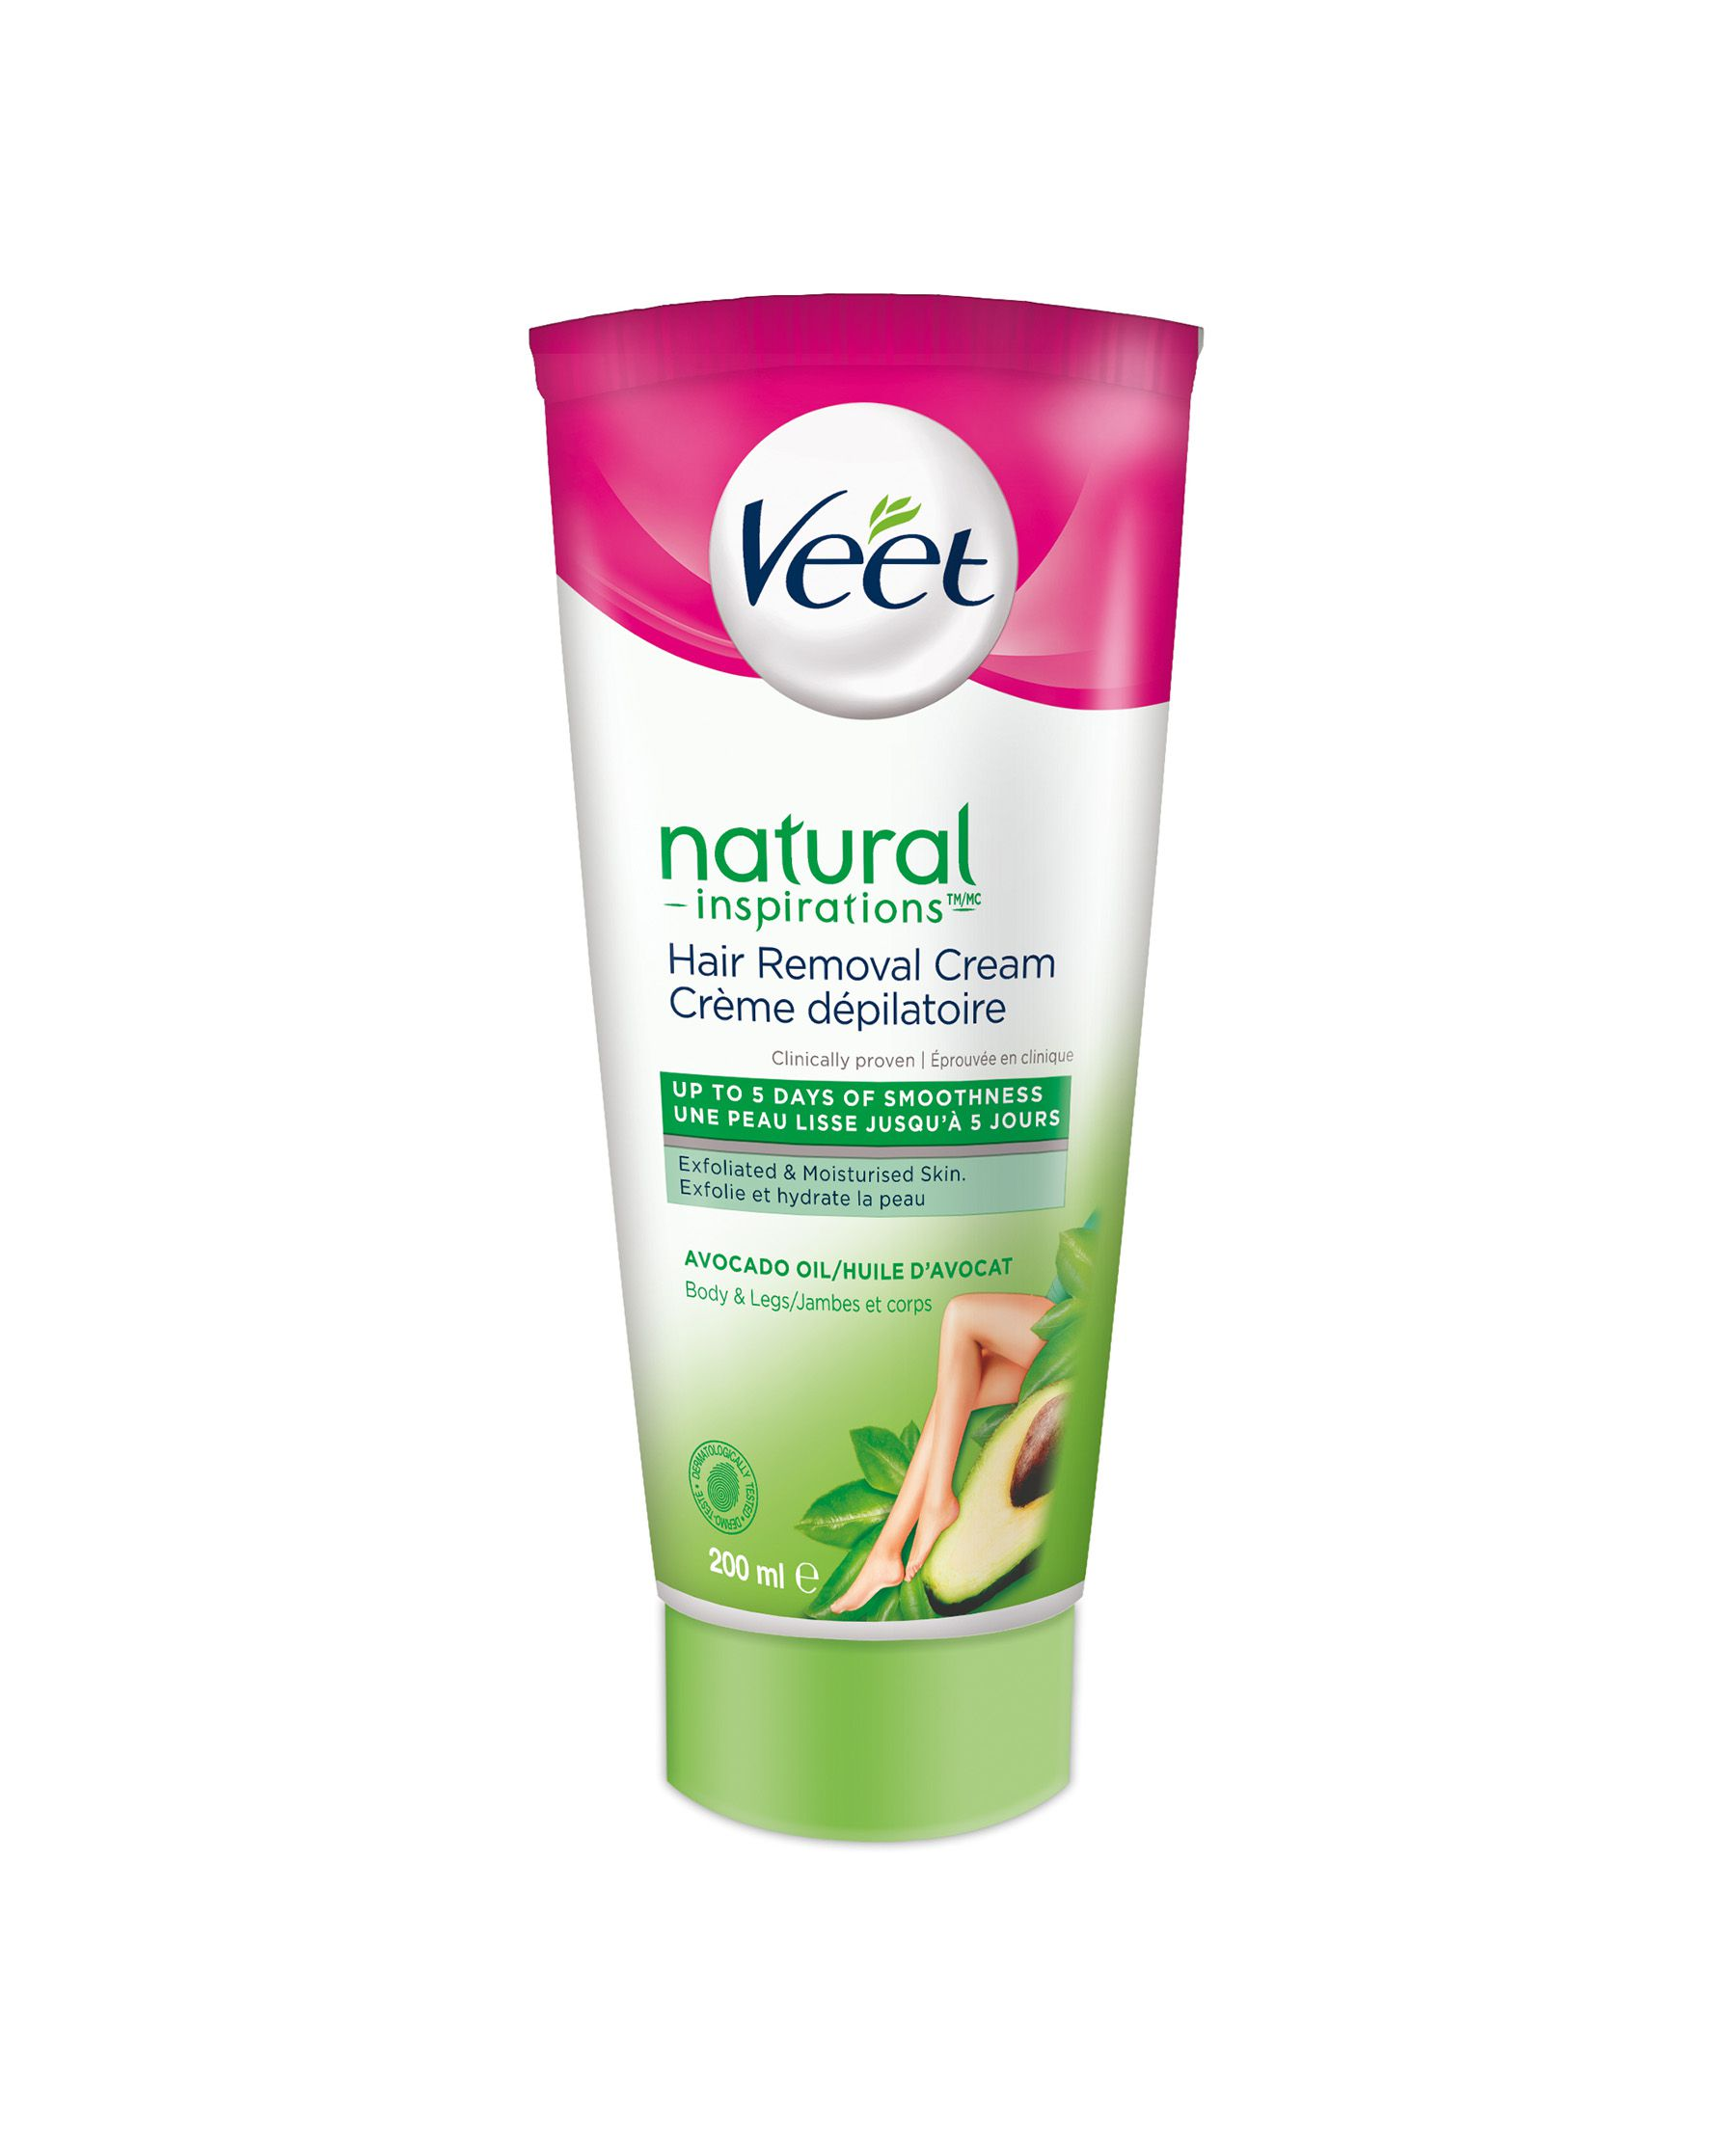 Veet® Natural Inspirations™ Hair Removal Cream Legs & Body Normal & Dry Skin, 200mL